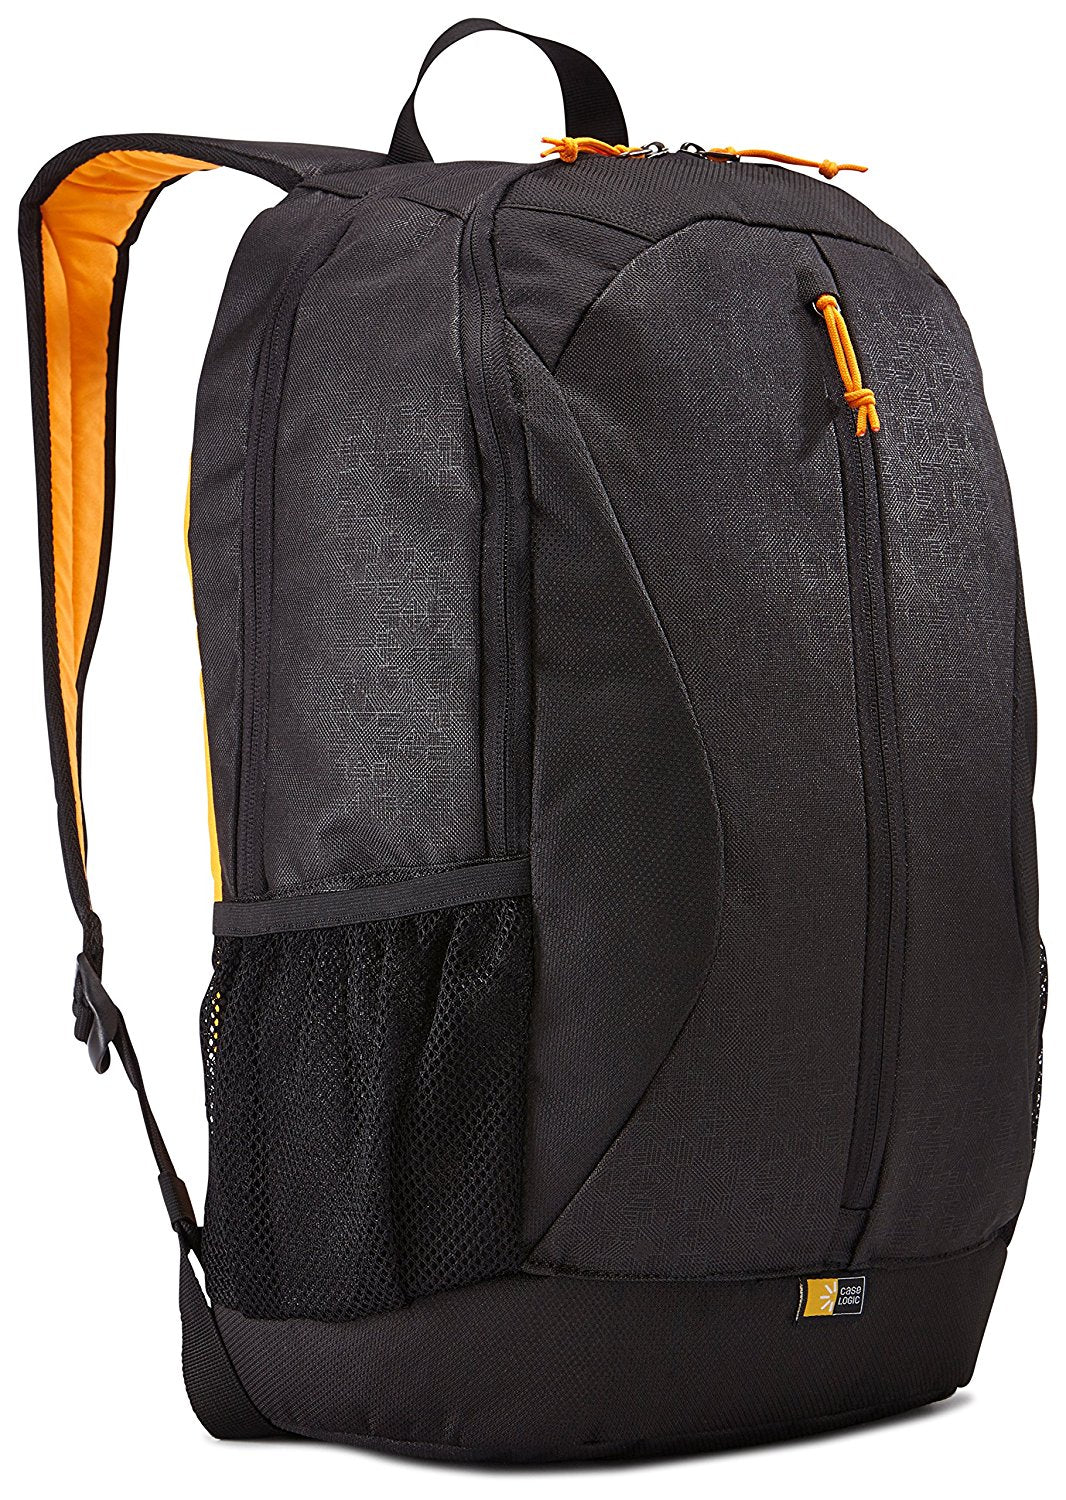 Case Logic Ibira Laptop Backpack IBIR-115 Black